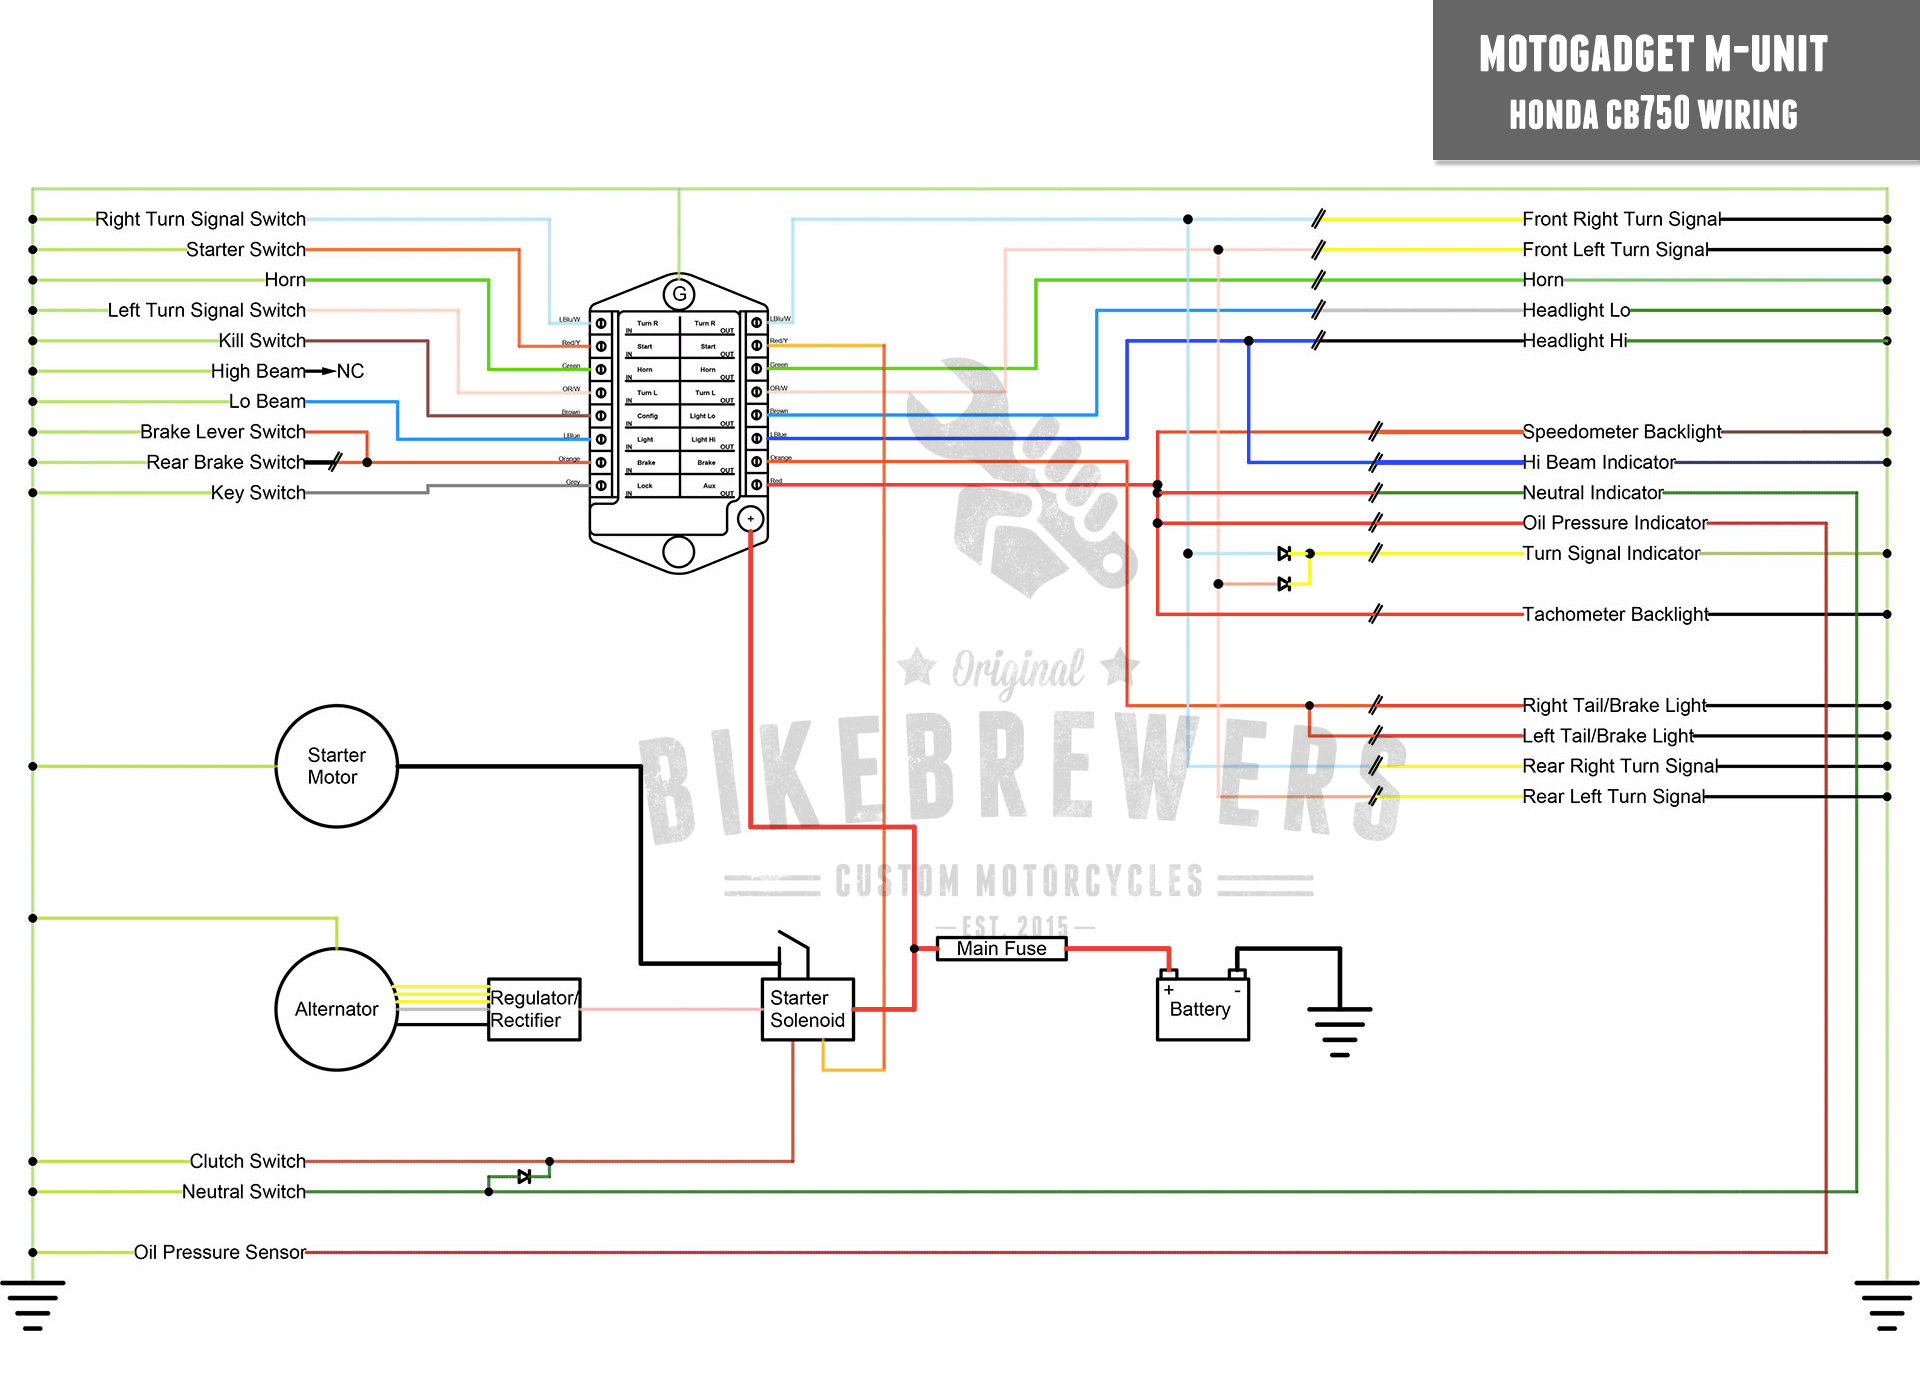 MotoGadget Wiring Honda CB750 motogadget m unit wiring bikebrewers com wiring diagram for motorcycle turn signals at beritabola.co